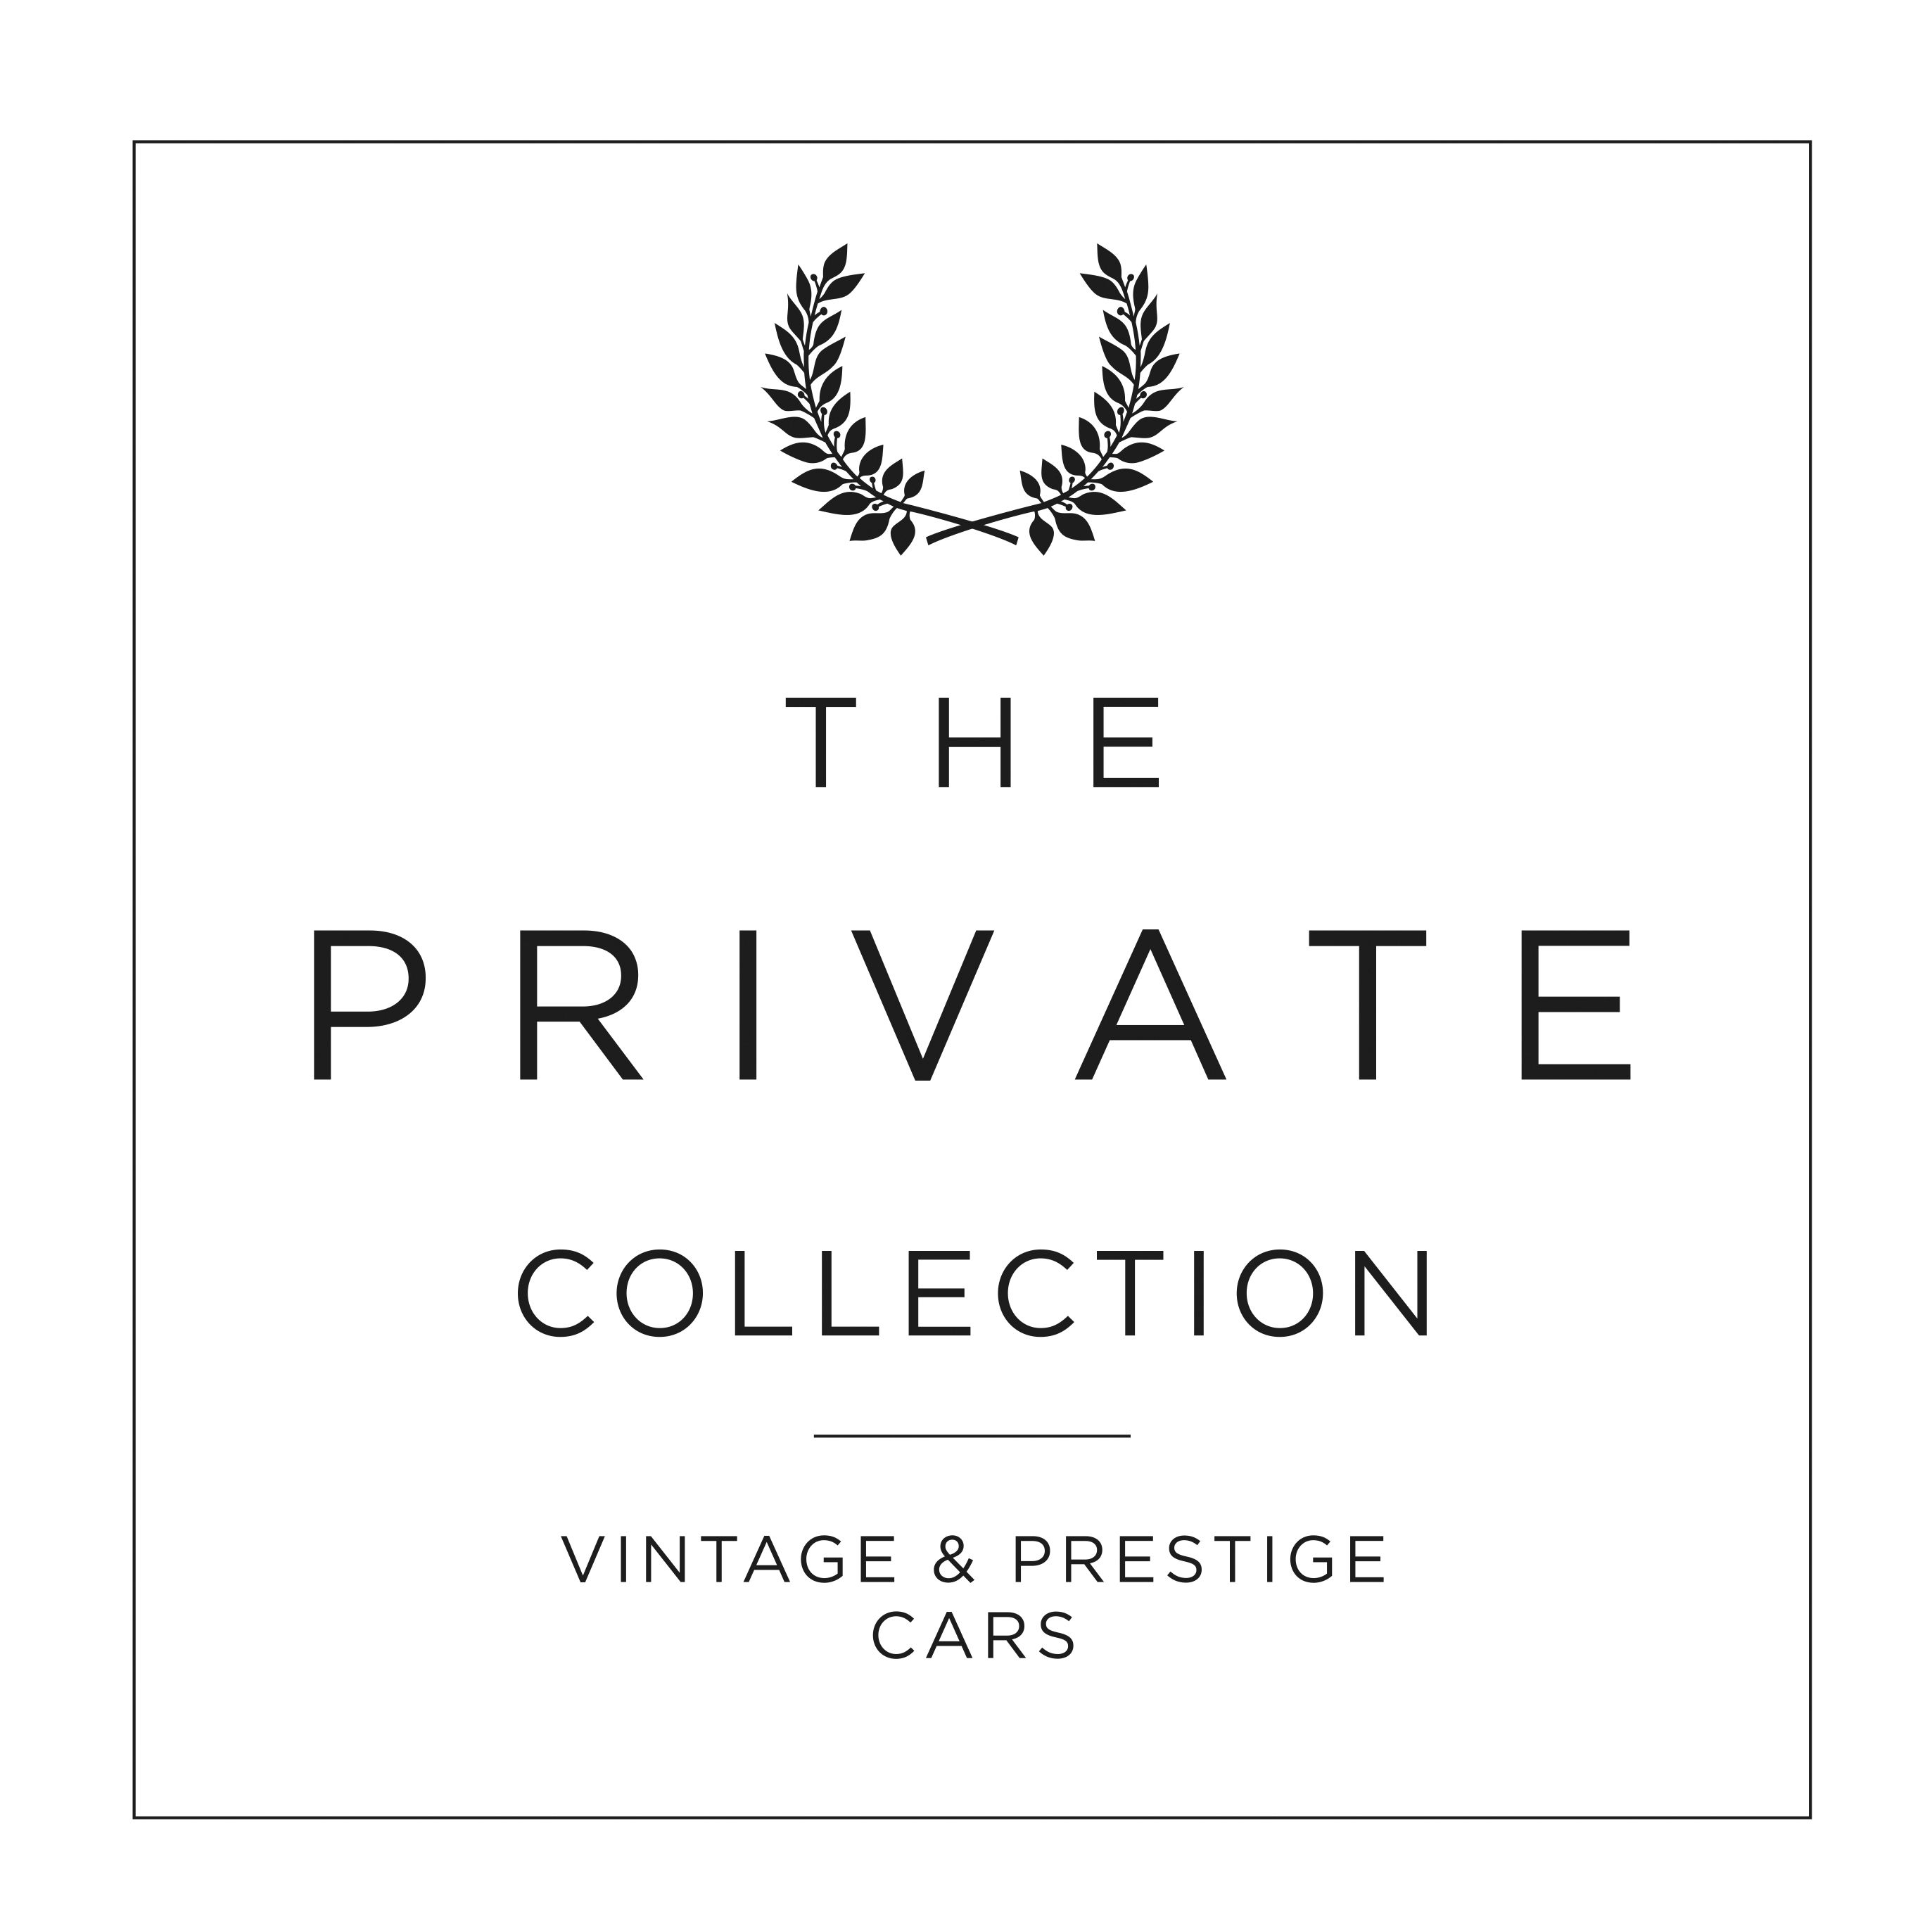 Used Mercedes-Benz 300SL cars for sale with PistonHeads